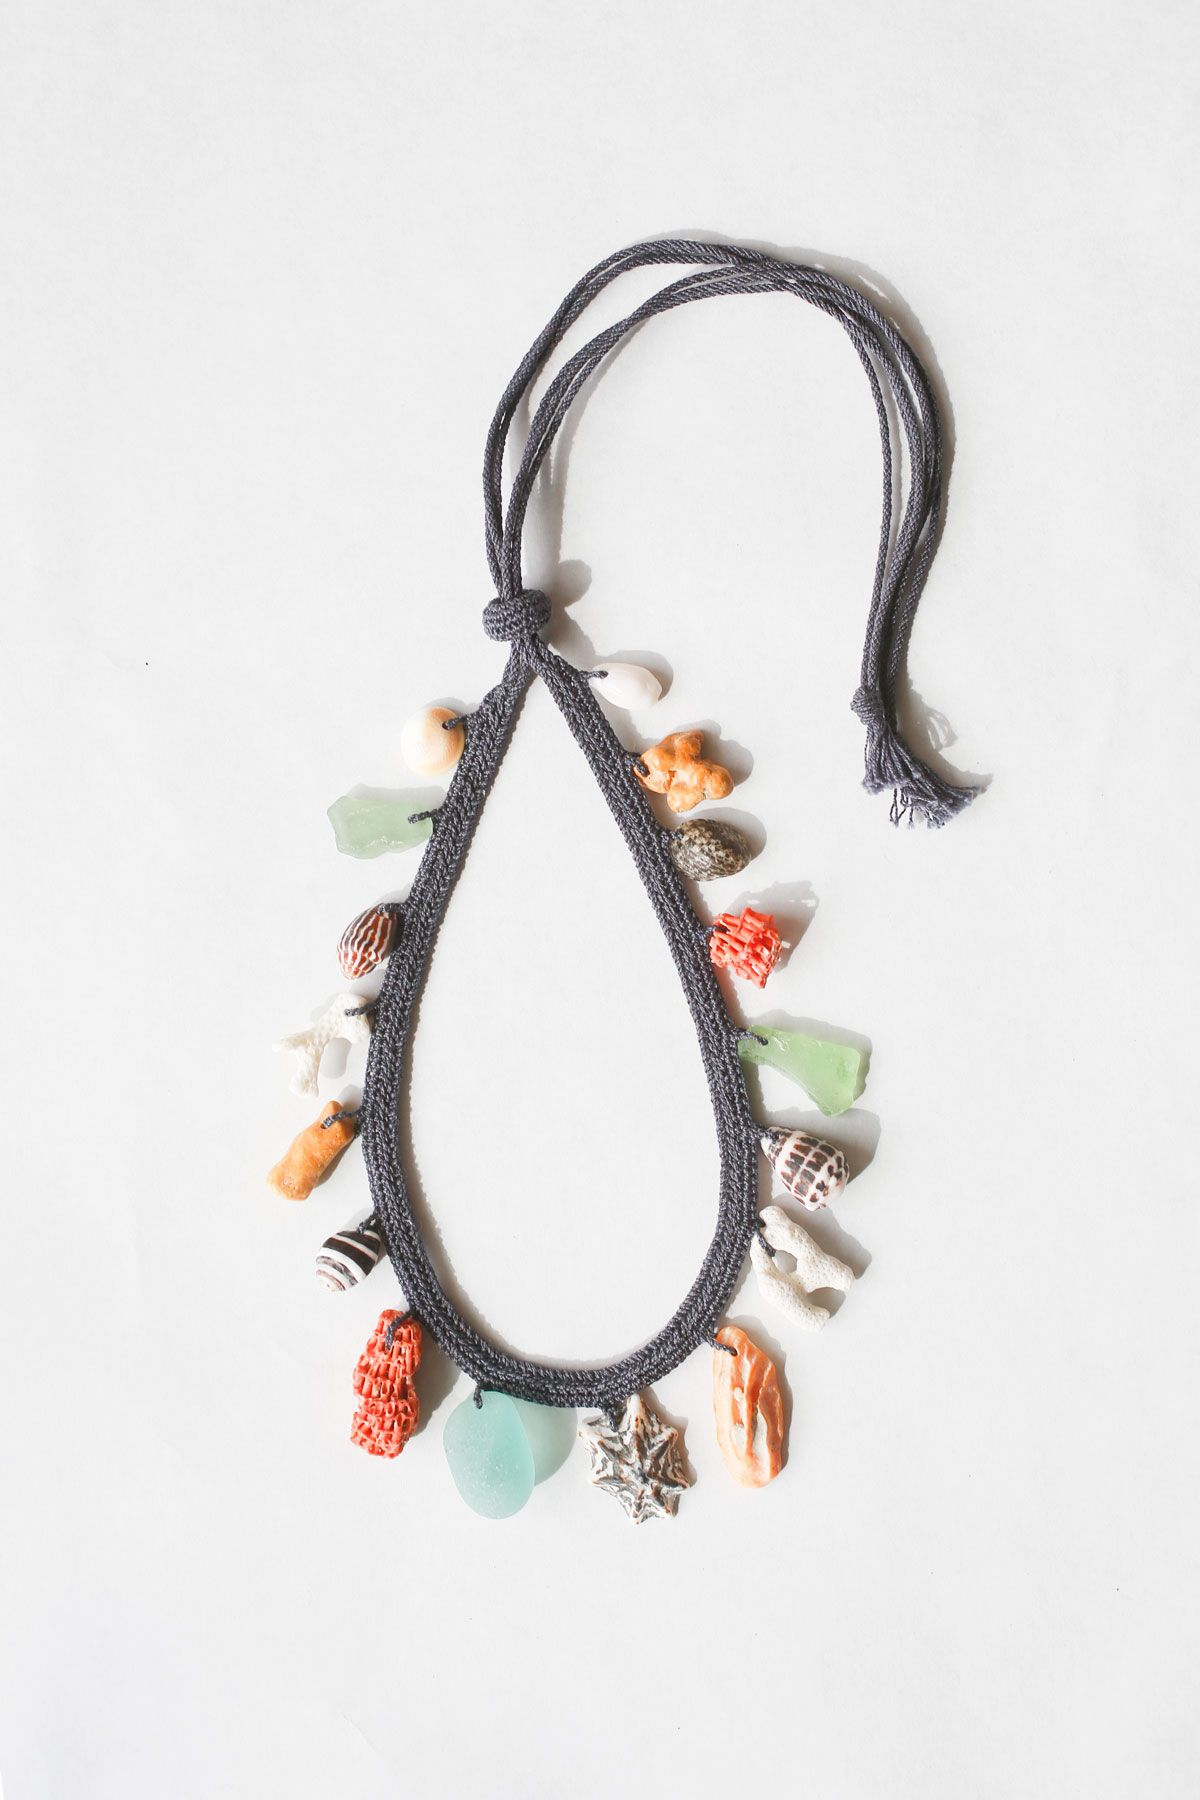 Plaited cotton necklace with shells, glass and coral